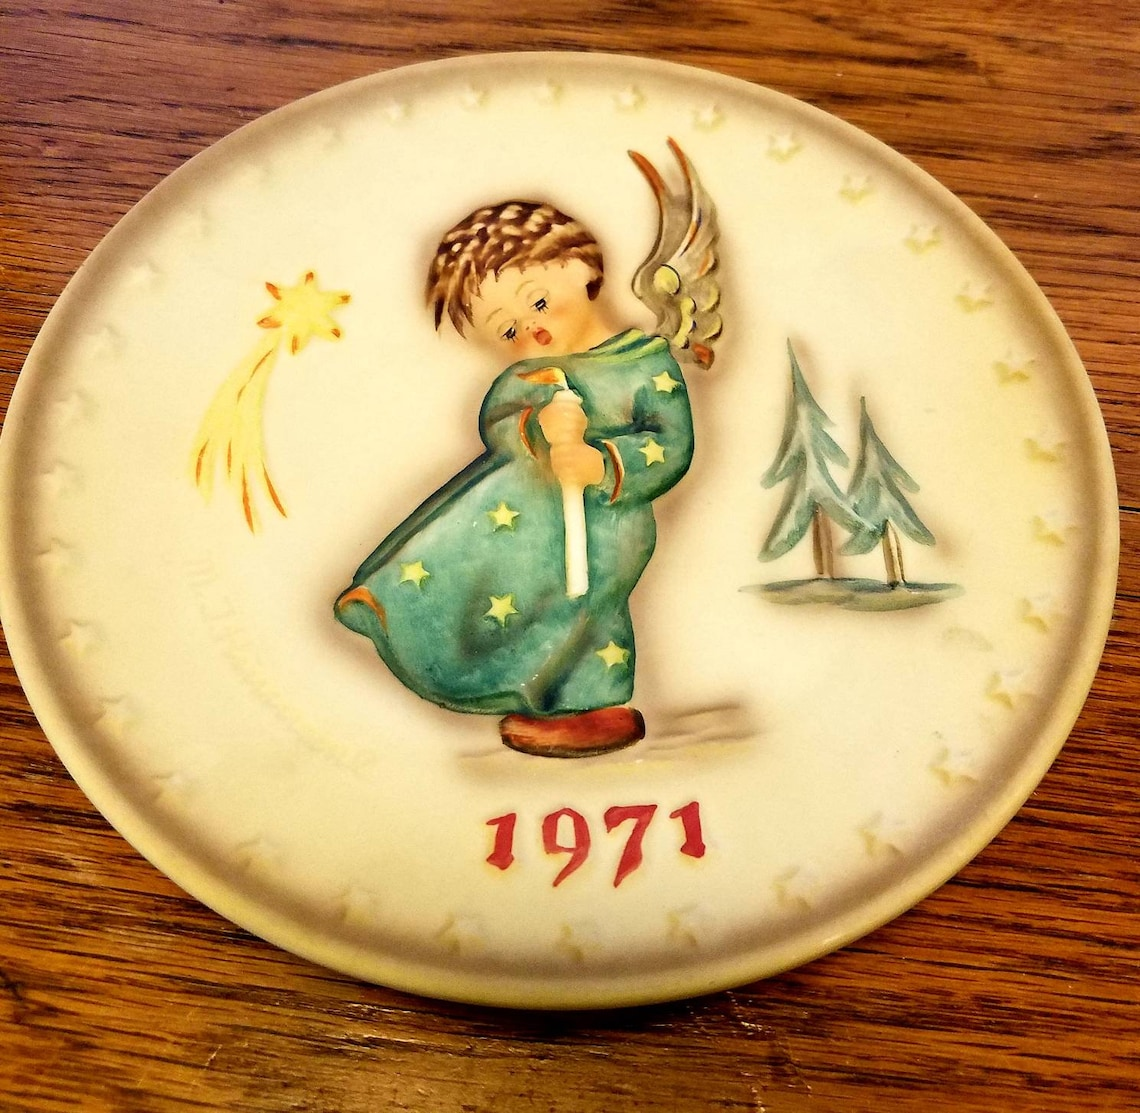 Hummel 1971 Christmas plate, with worn box, excellent condition plate, 1st in series, Musical Angel, Berta Hummel, Collector plate